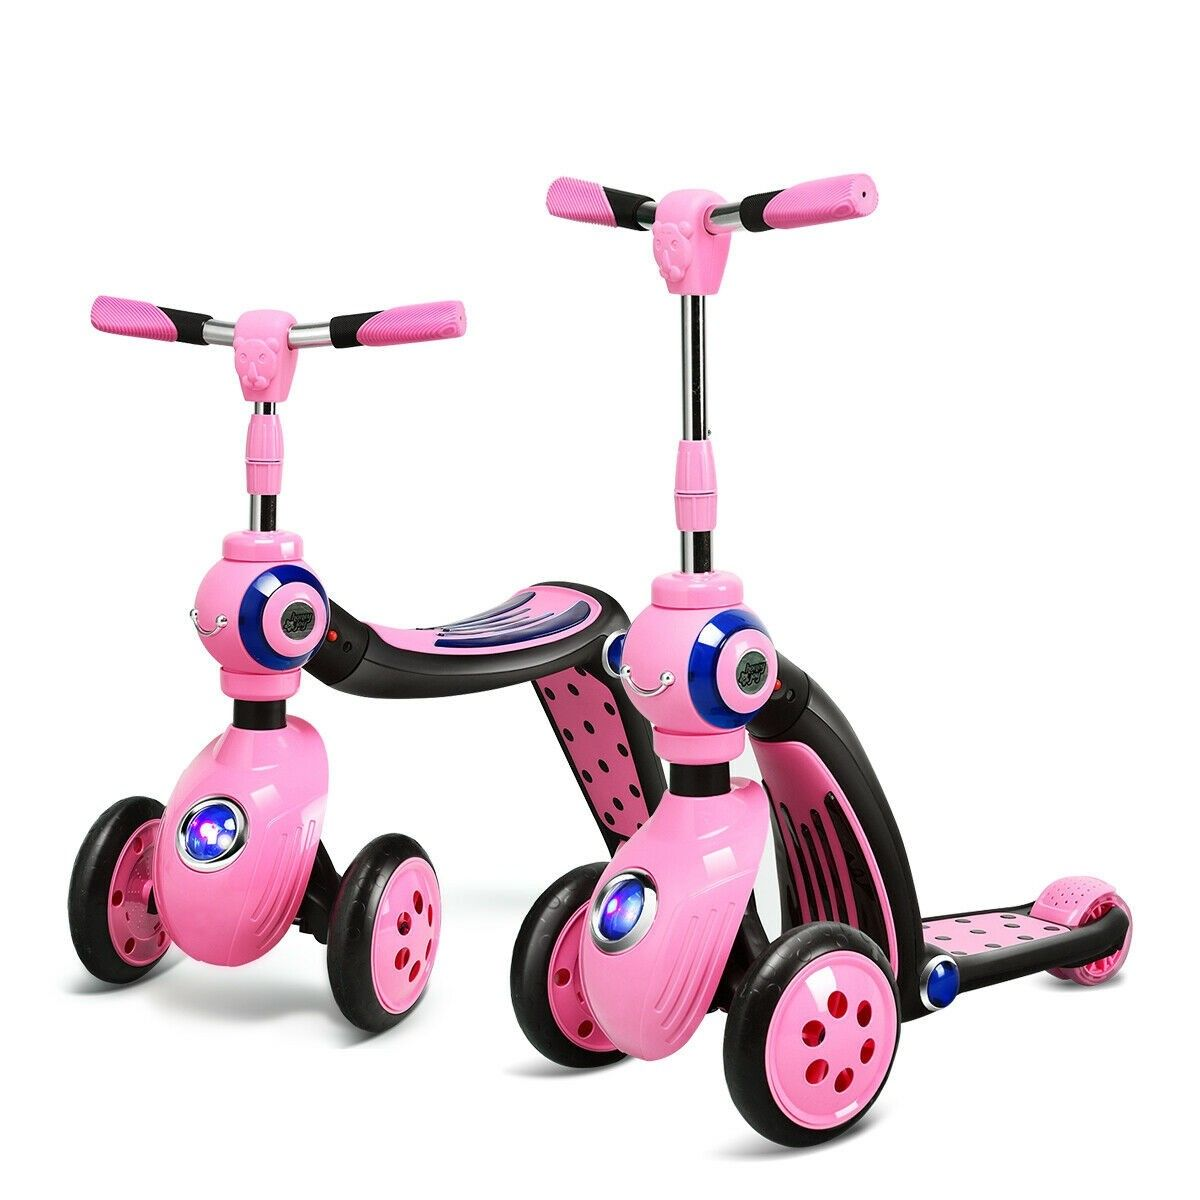 2 In 1 Kick Scooter Balance Trike With 3 Wheel Kick Scooter